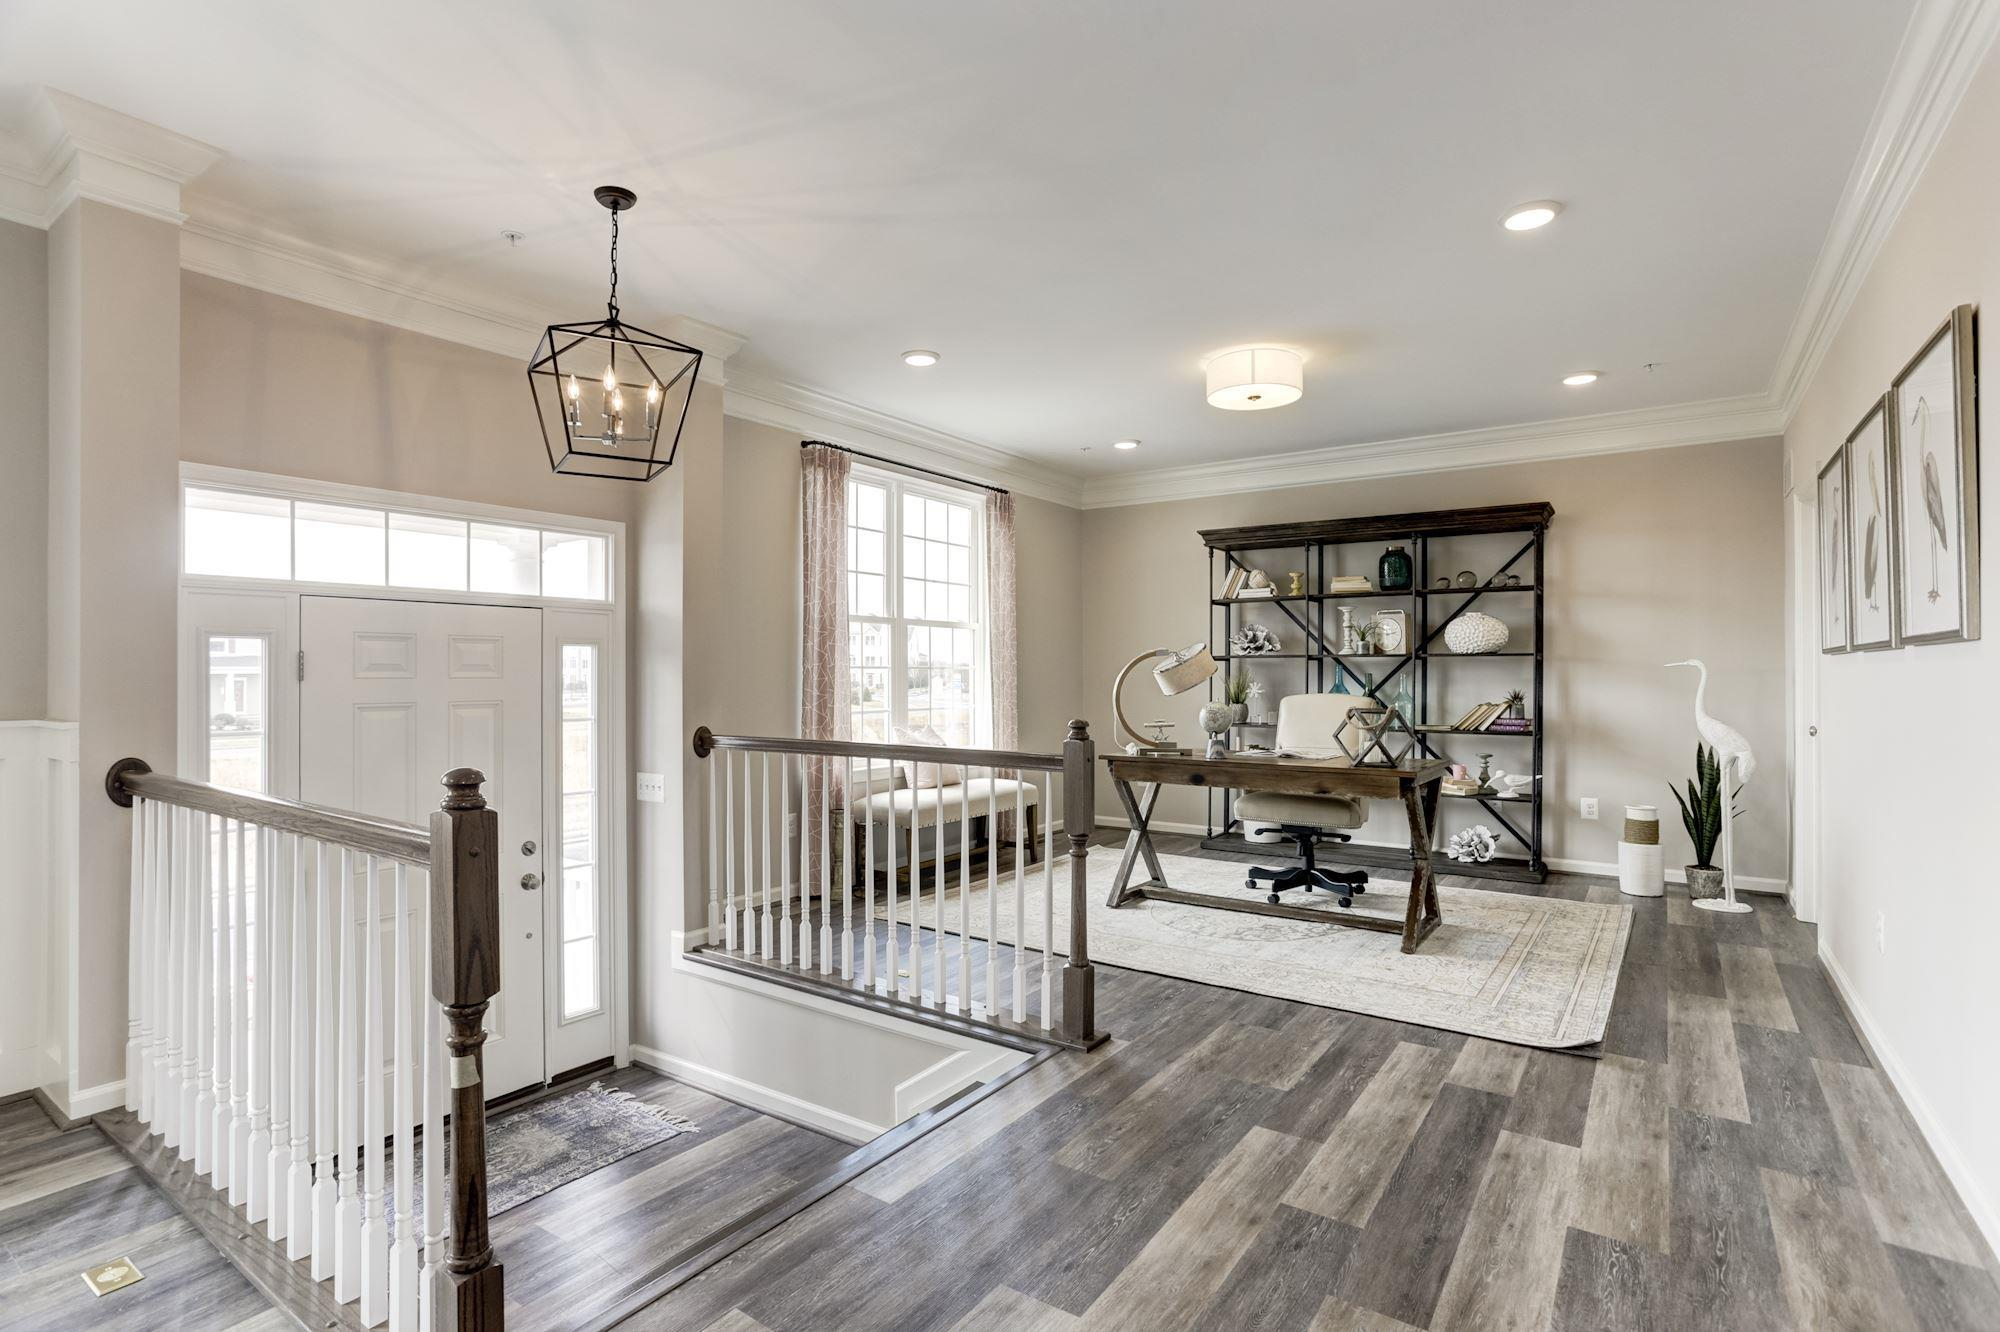 Living Area featured in the Blair with English Basement By Baldwin Homes Inc. in Eastern Shore, MD